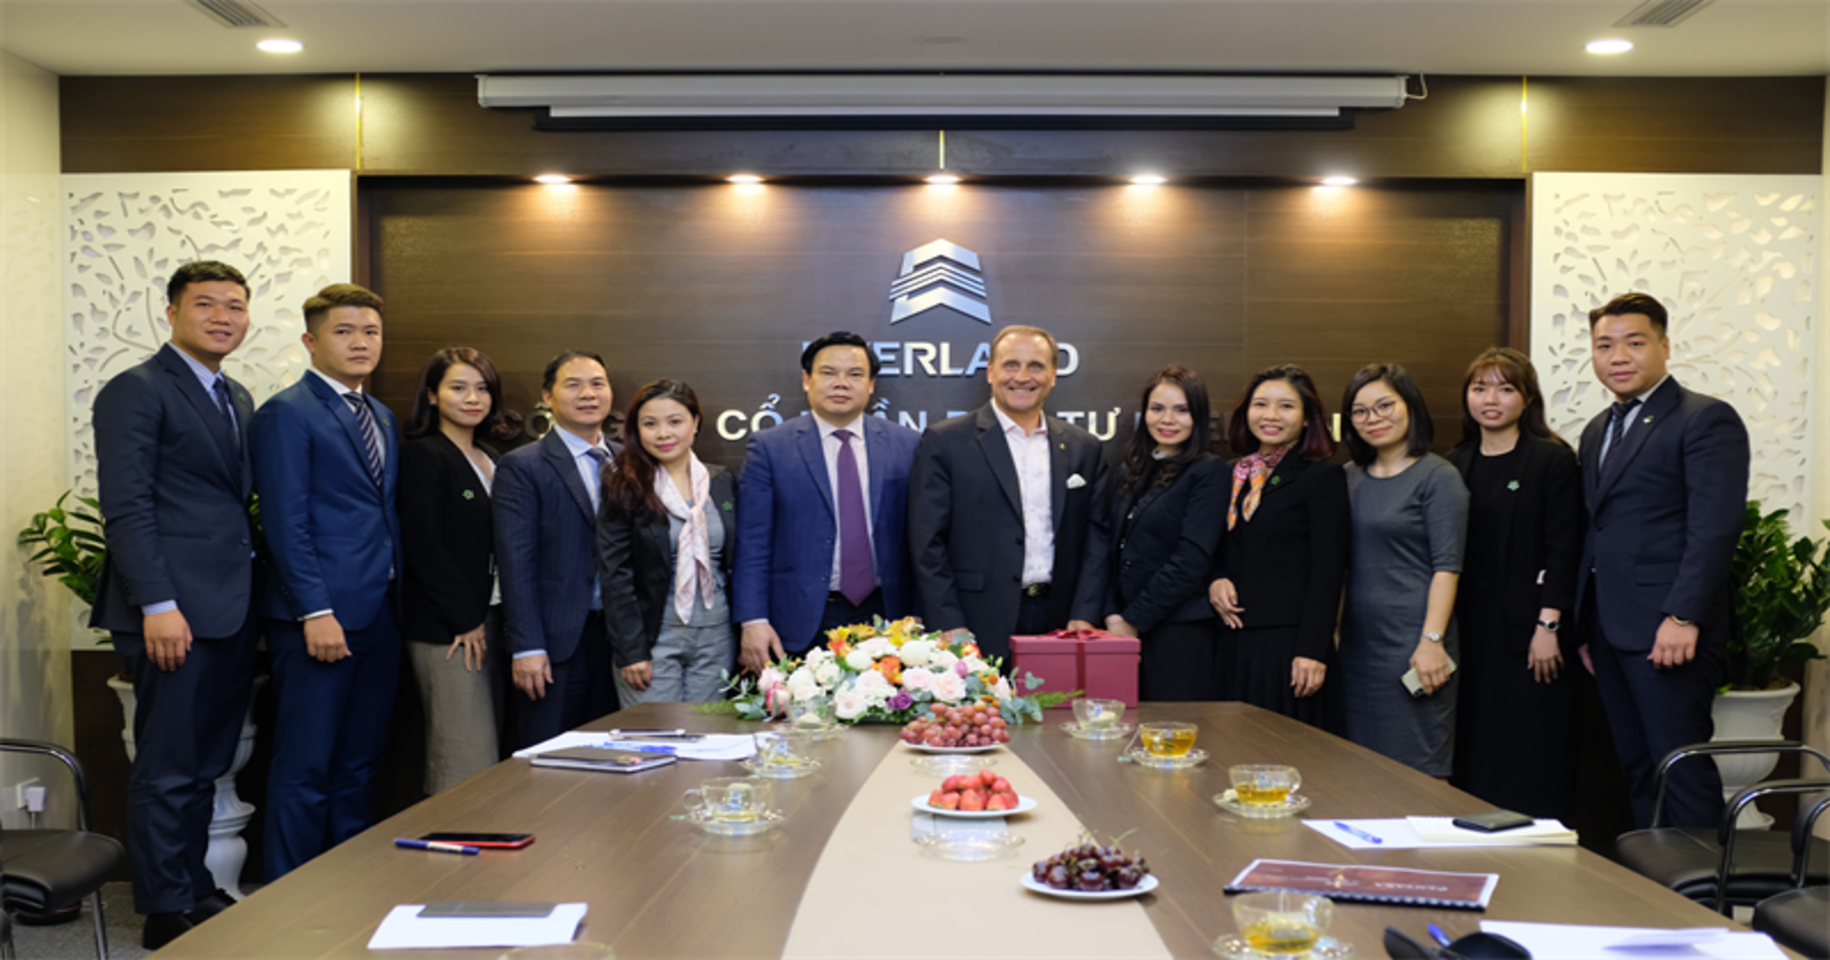 The Vice President in Charge Of Business Development Of Centara Hotels & Resorts Group Visited Everland Group's Head Office